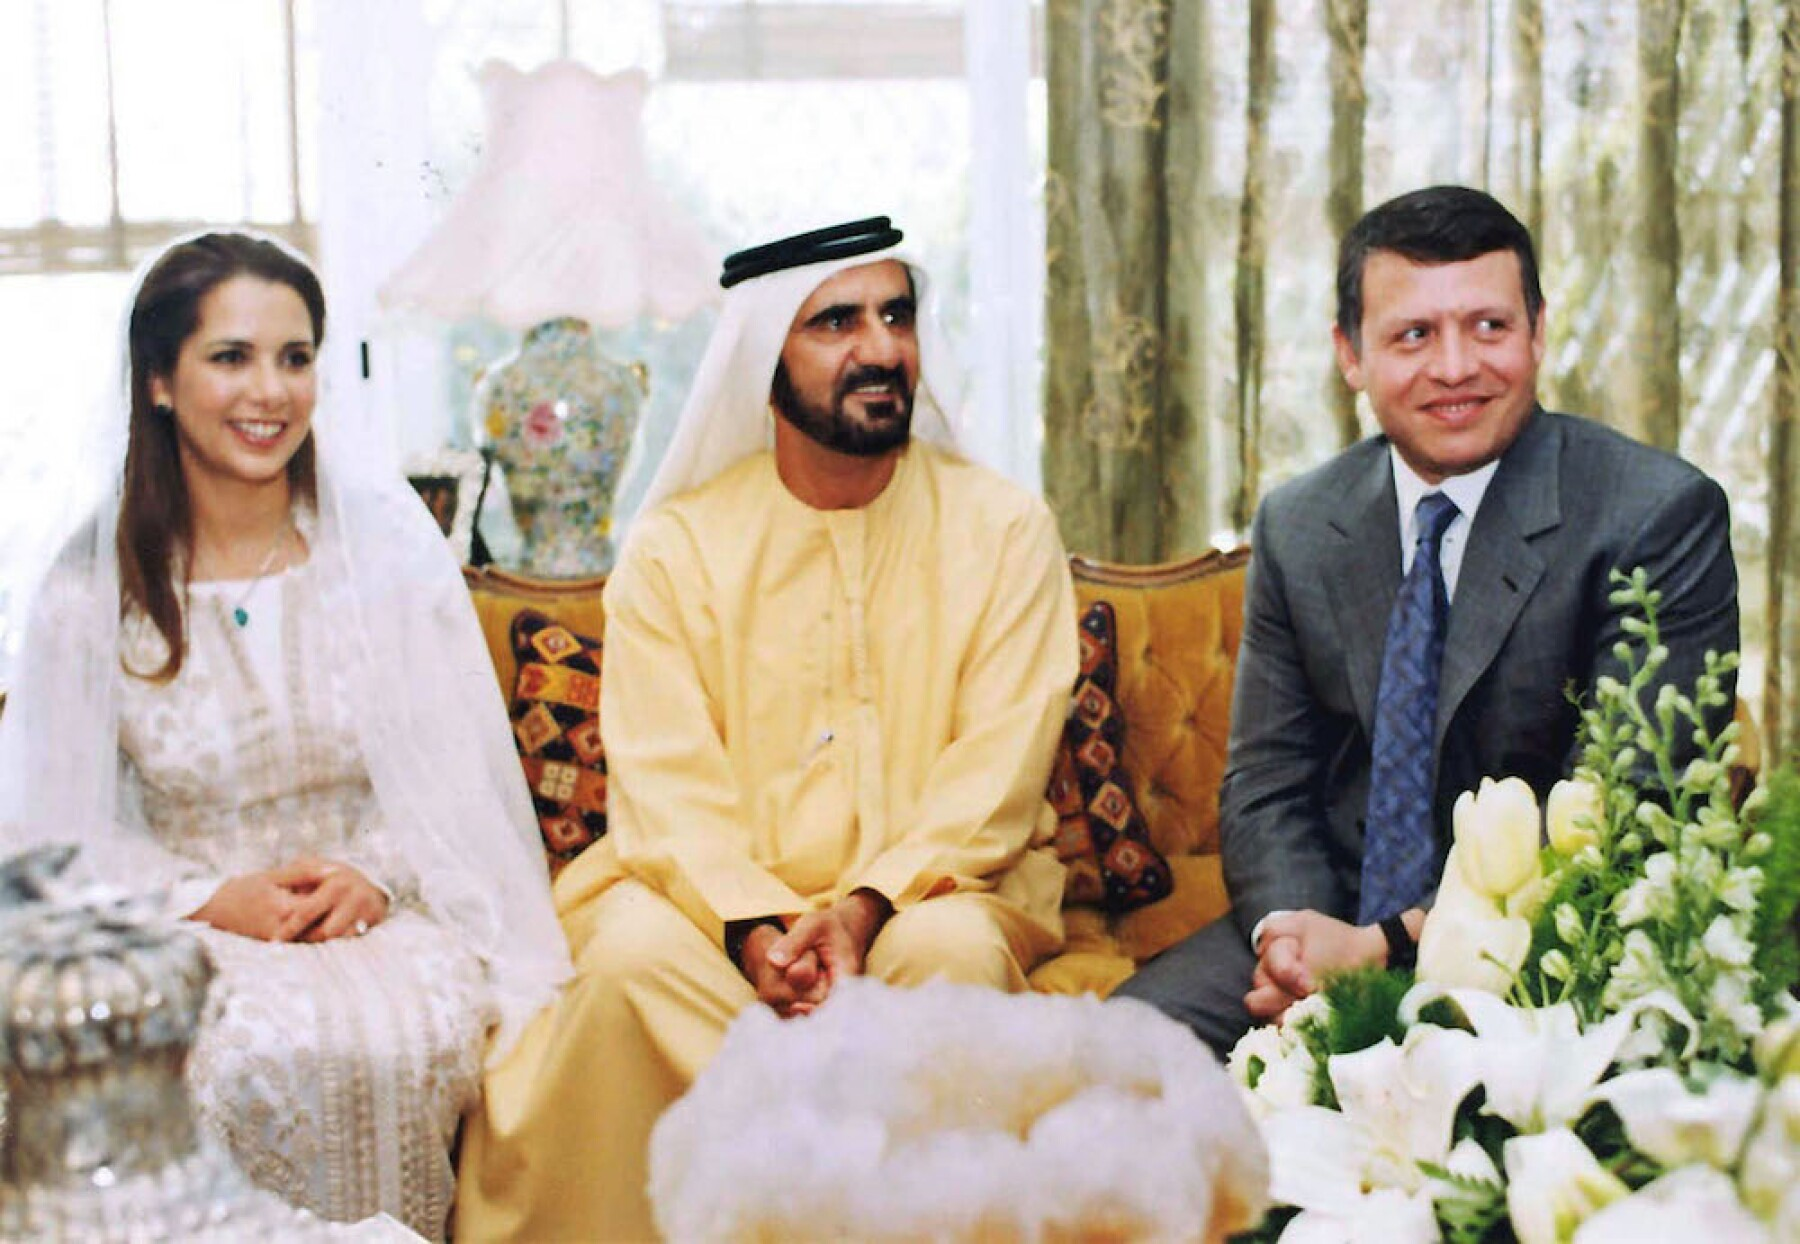 Amman's Crown Prince Married